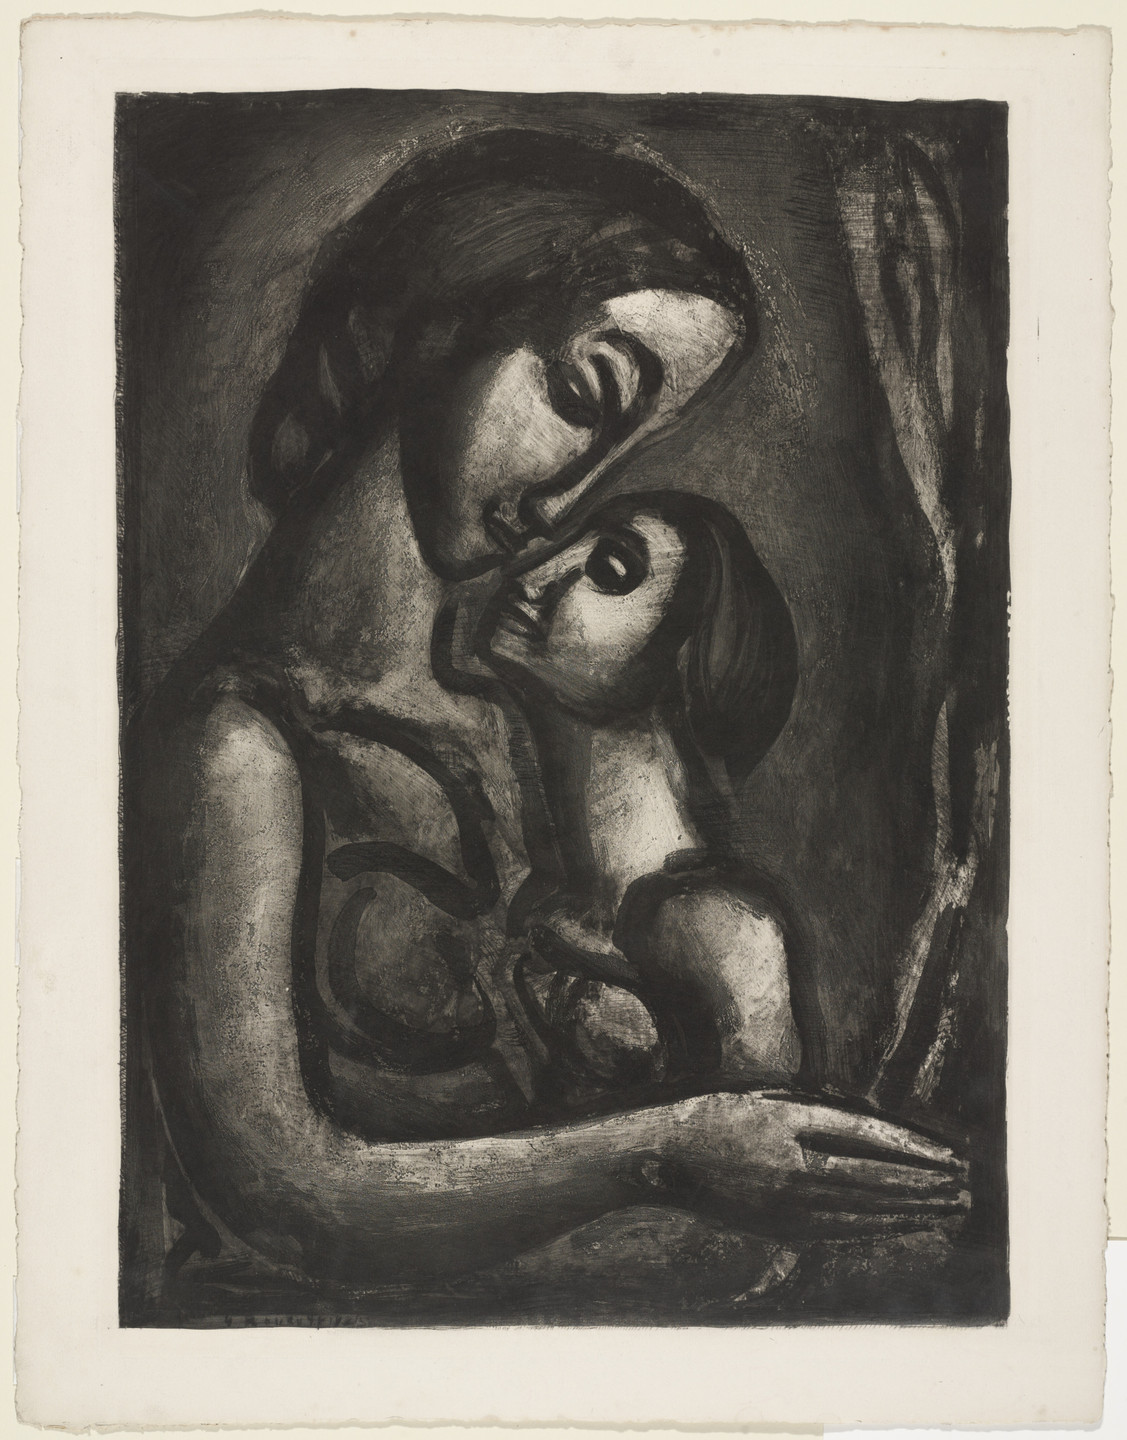 Georges Rouault. Trial proof for It Would be So Sweet to Love!, plate XIII from Miserere. (Book commissioned, but unpublished by Vollard; Print executed 1923; Book publi